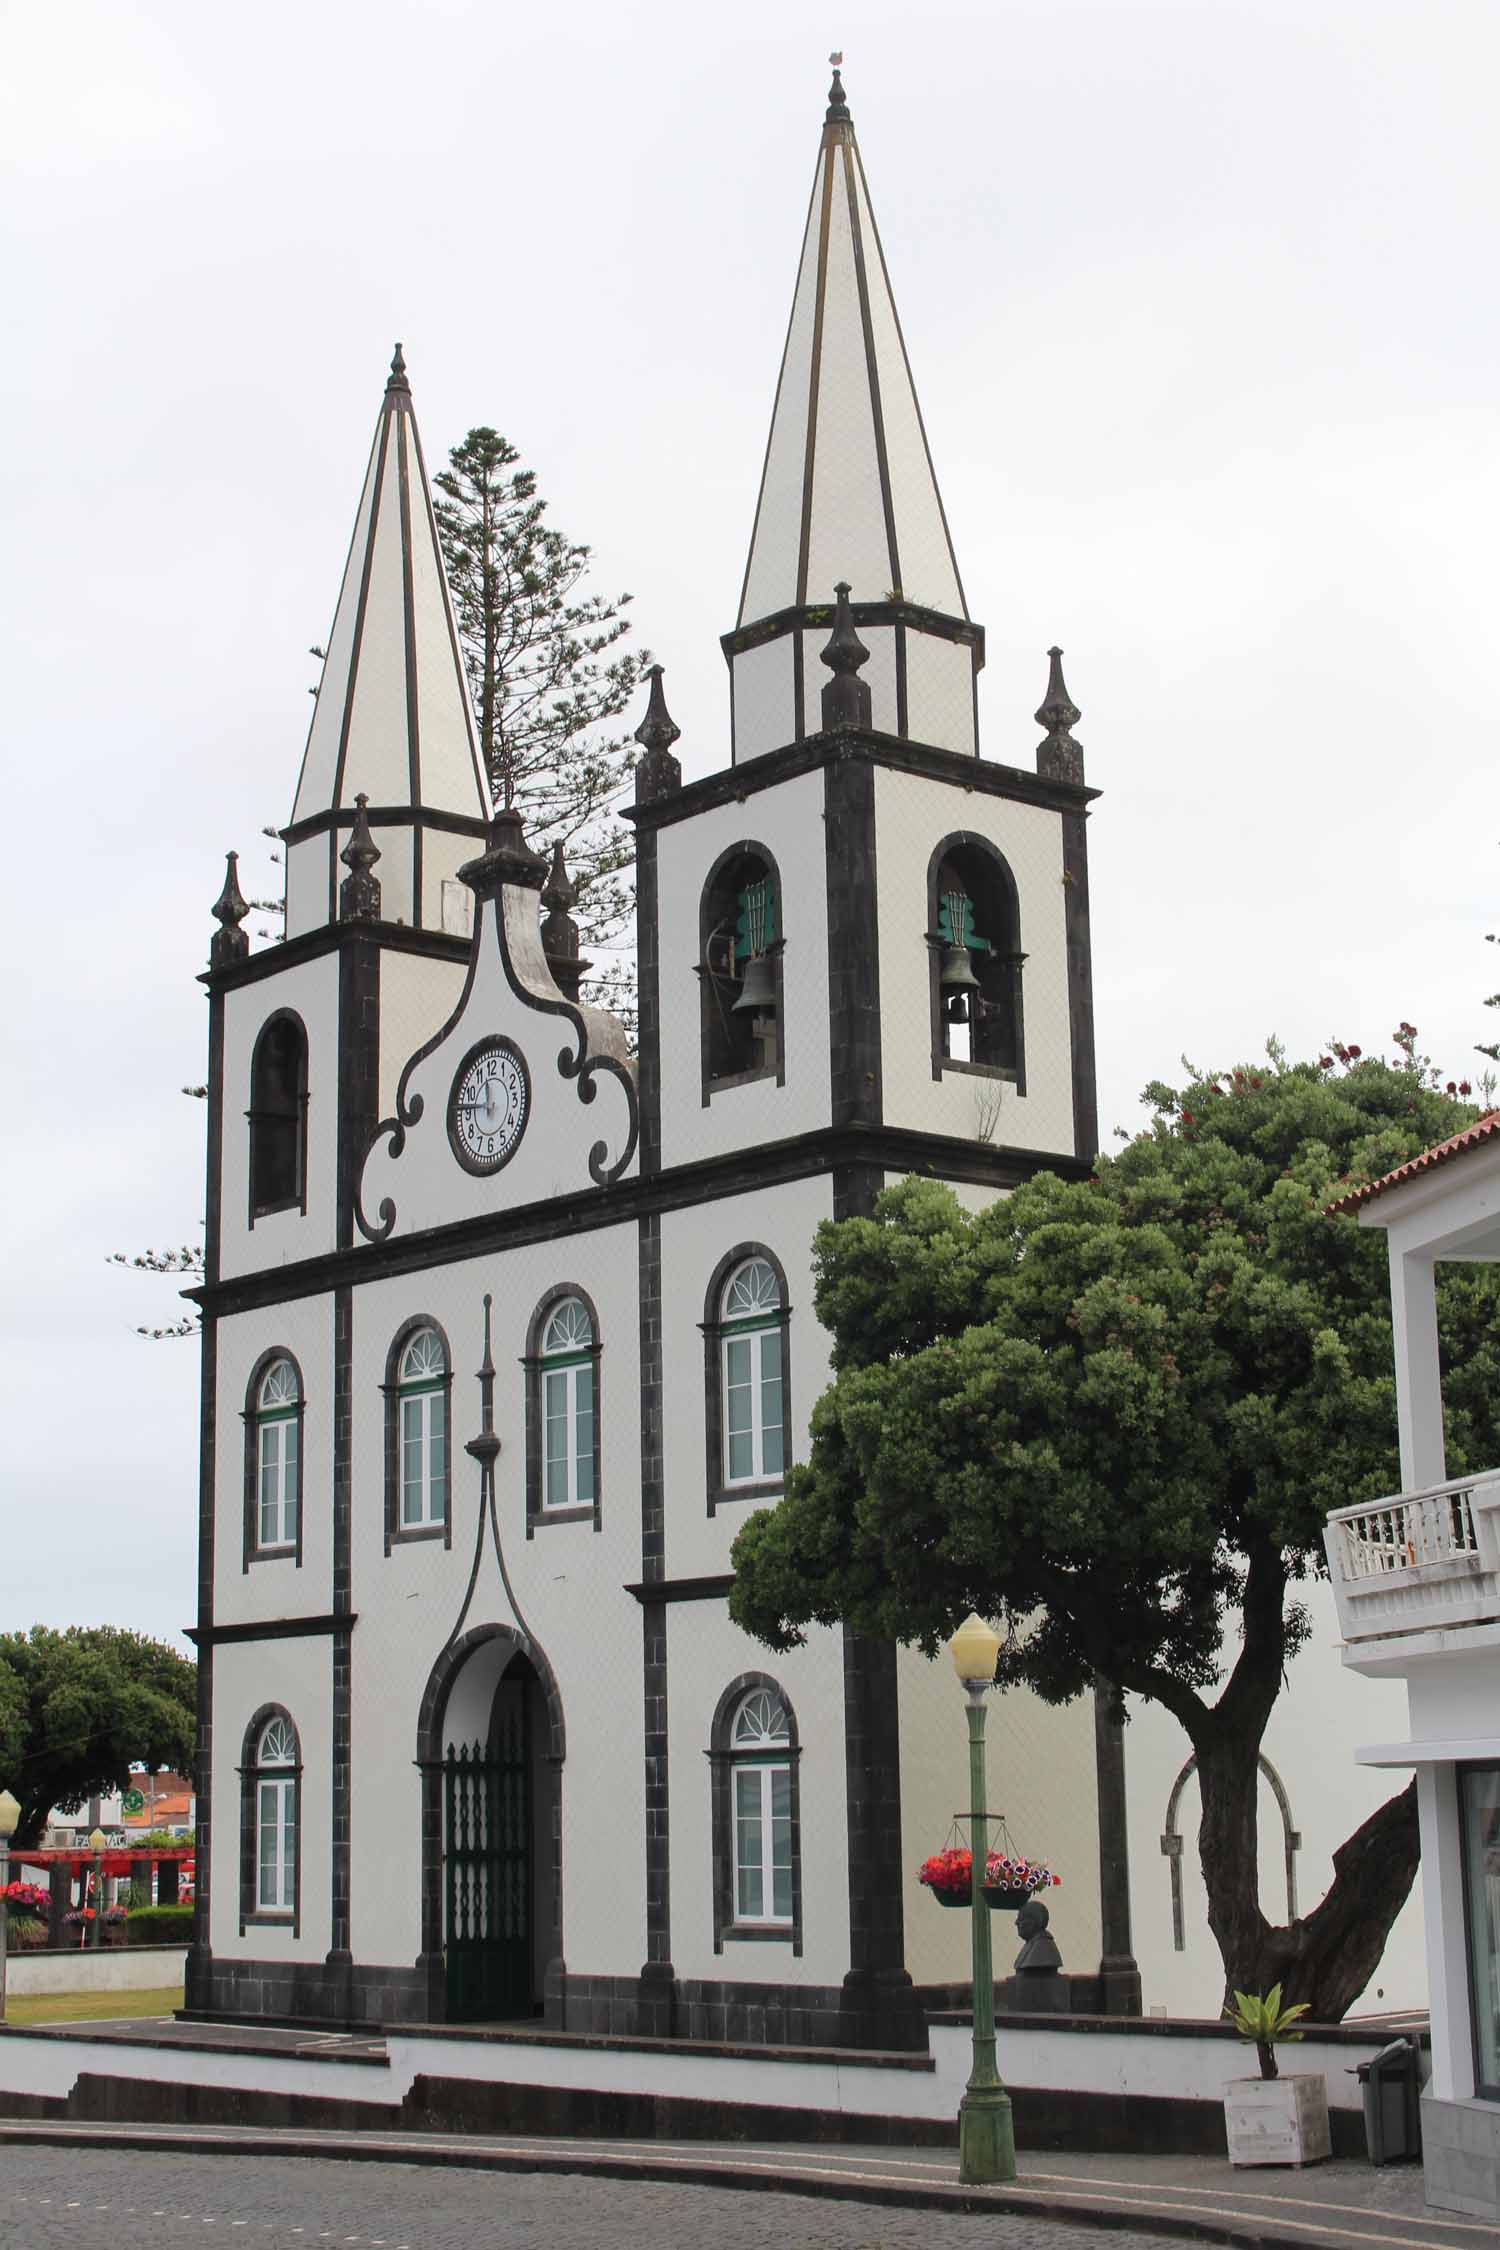 The typical church Santa Maria in Madalena, Pico Island, Azores